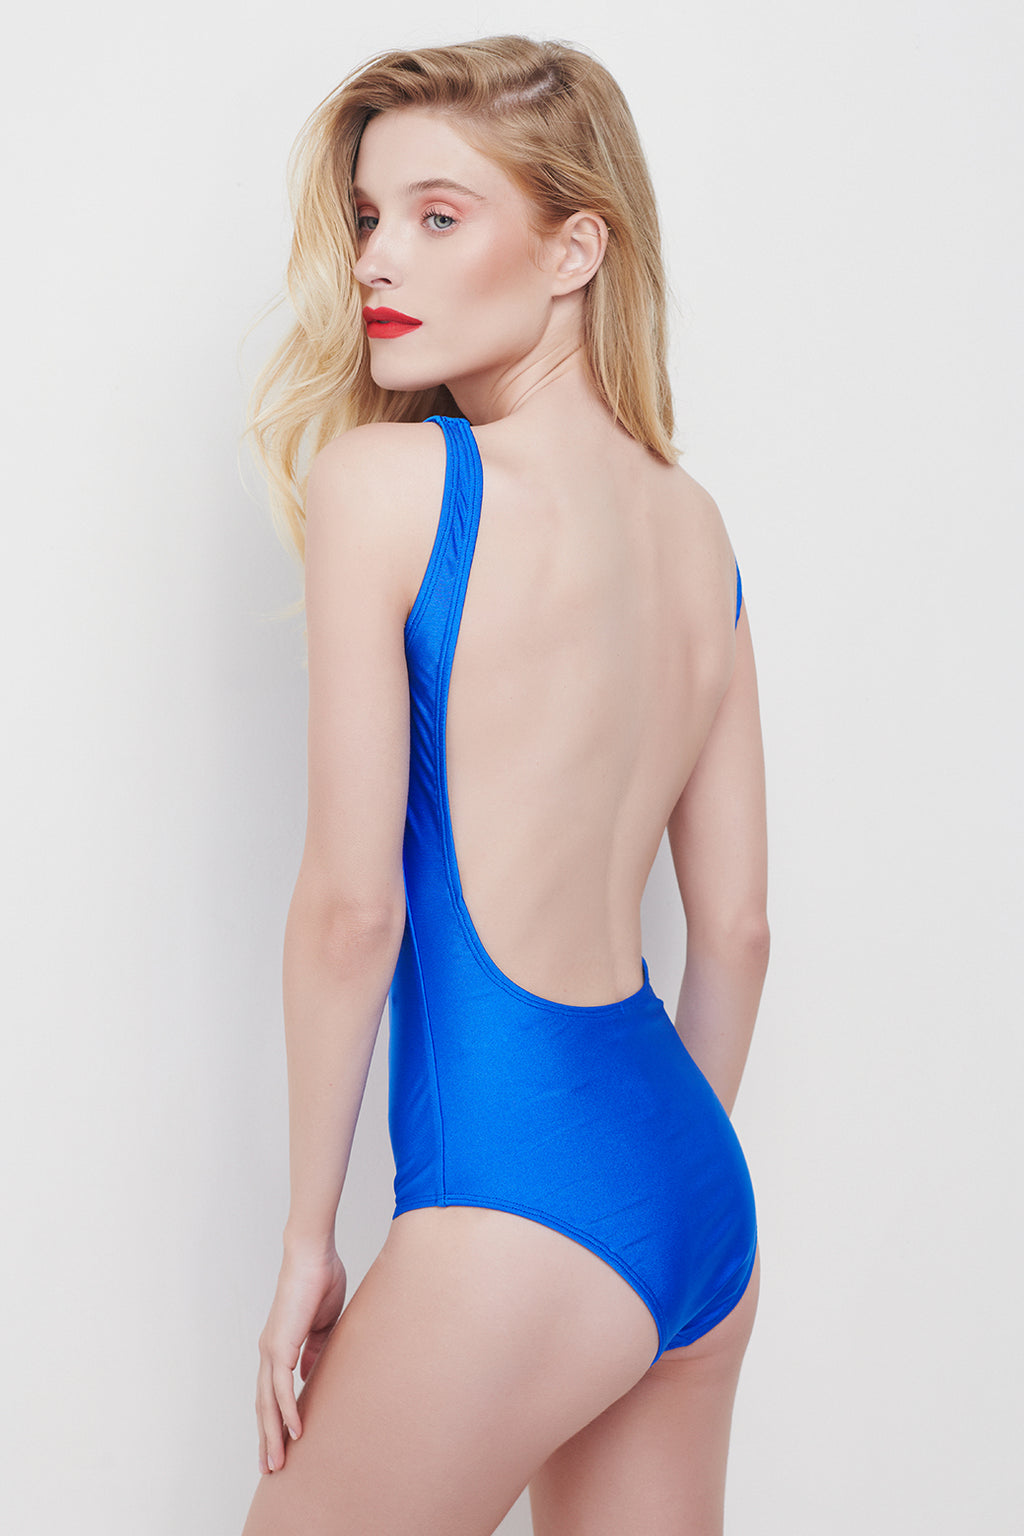 OPEN BACK - SHINY BLUE